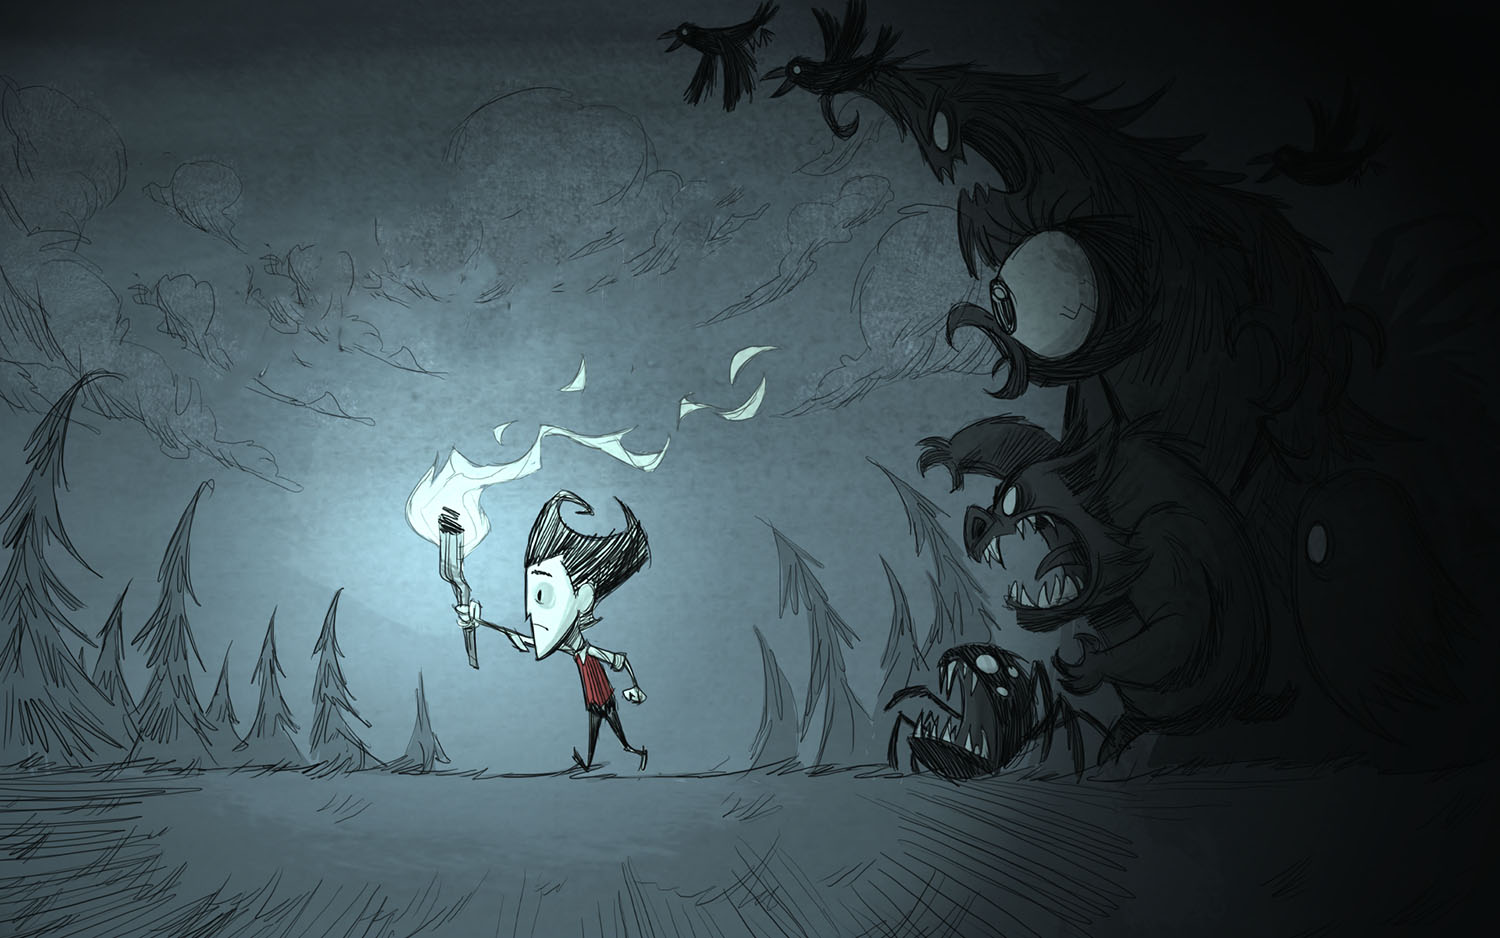 wilson-dont-starve-game-hd-wallpaper-1920x1200-9002